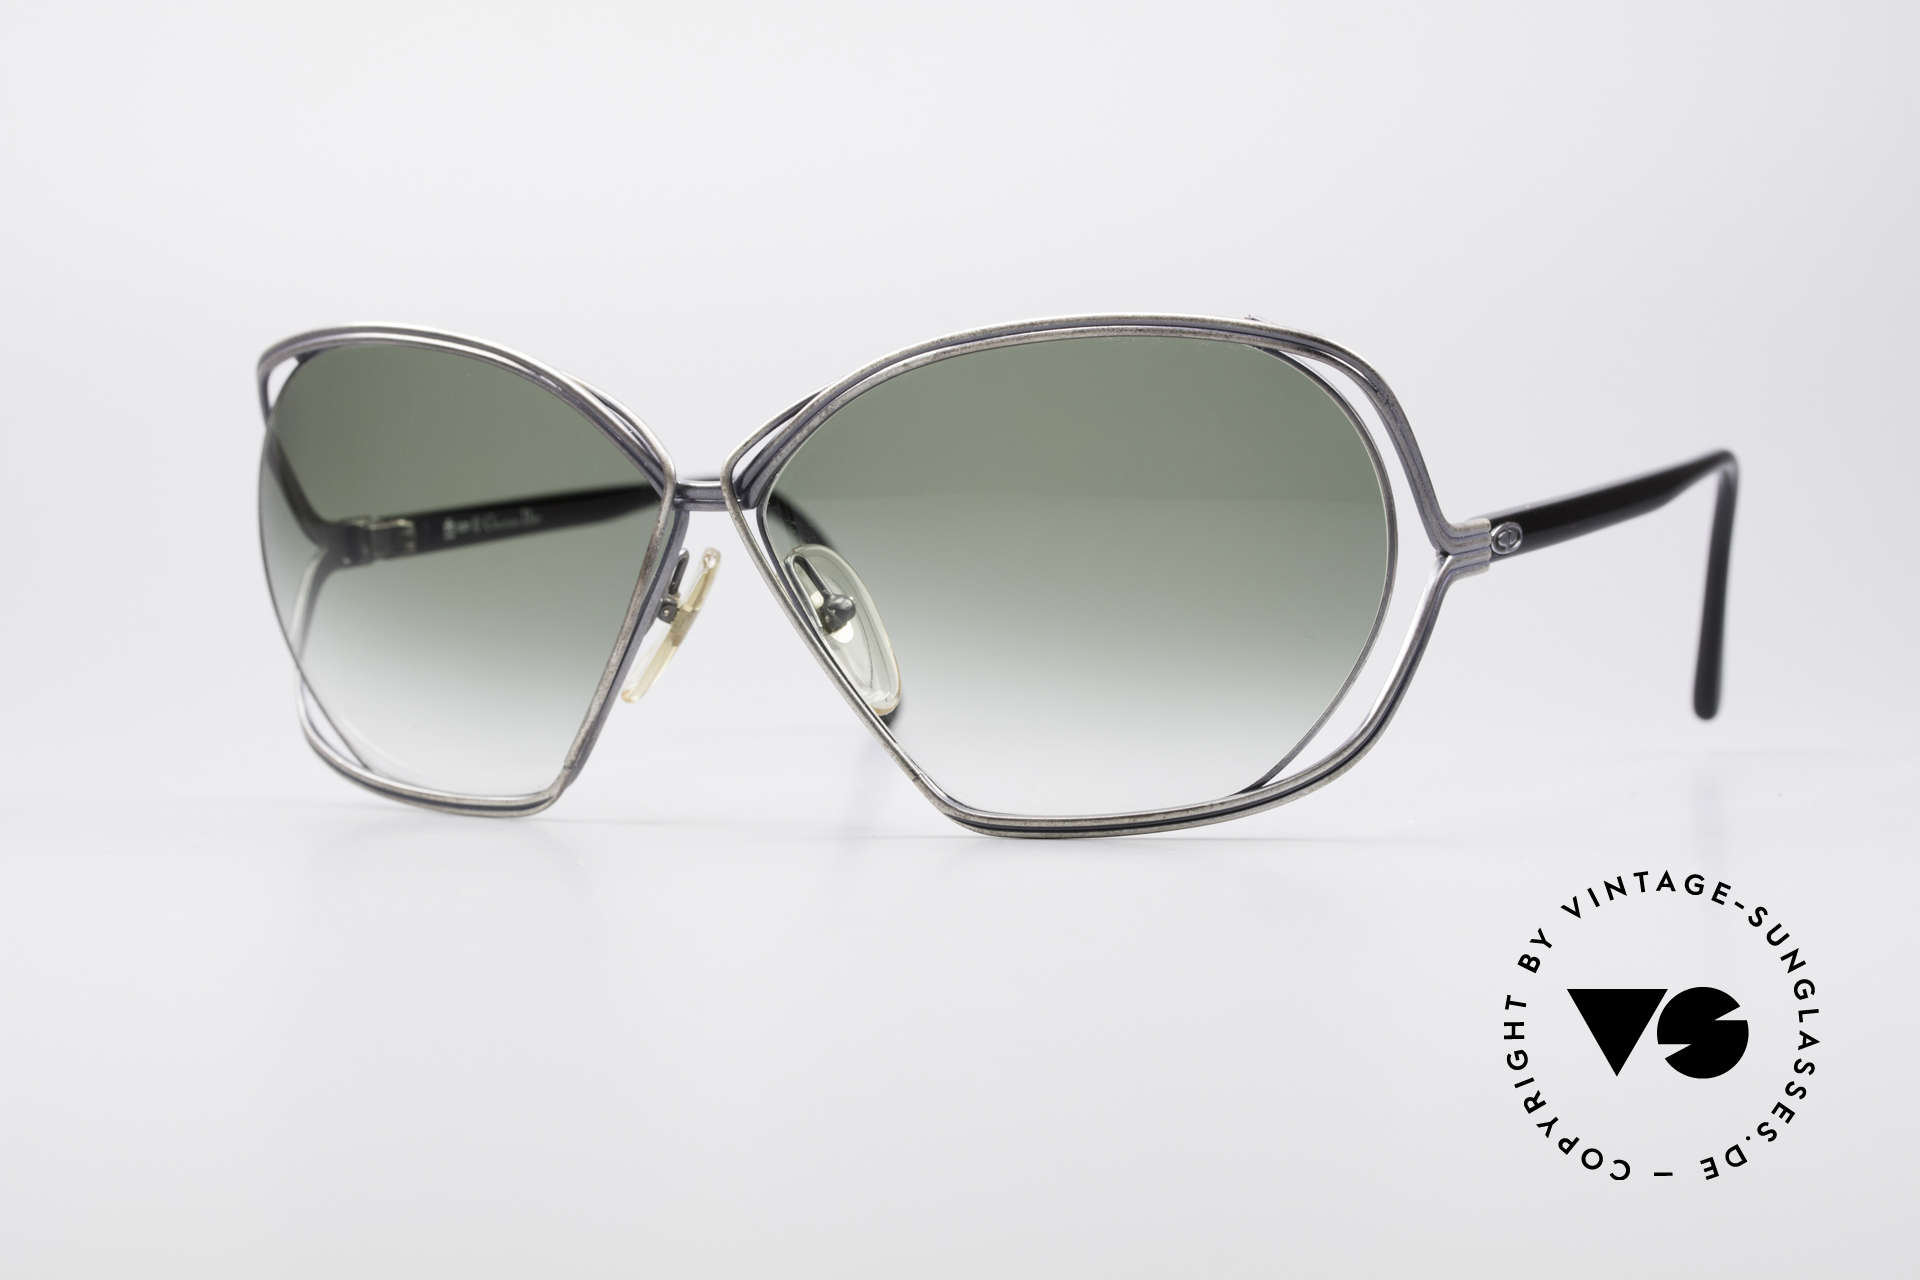 Christian Dior 2499 Ladies XL 80's Sunglasses, glamorous ladies' designer sunglasses of the 1980's, Made for Women